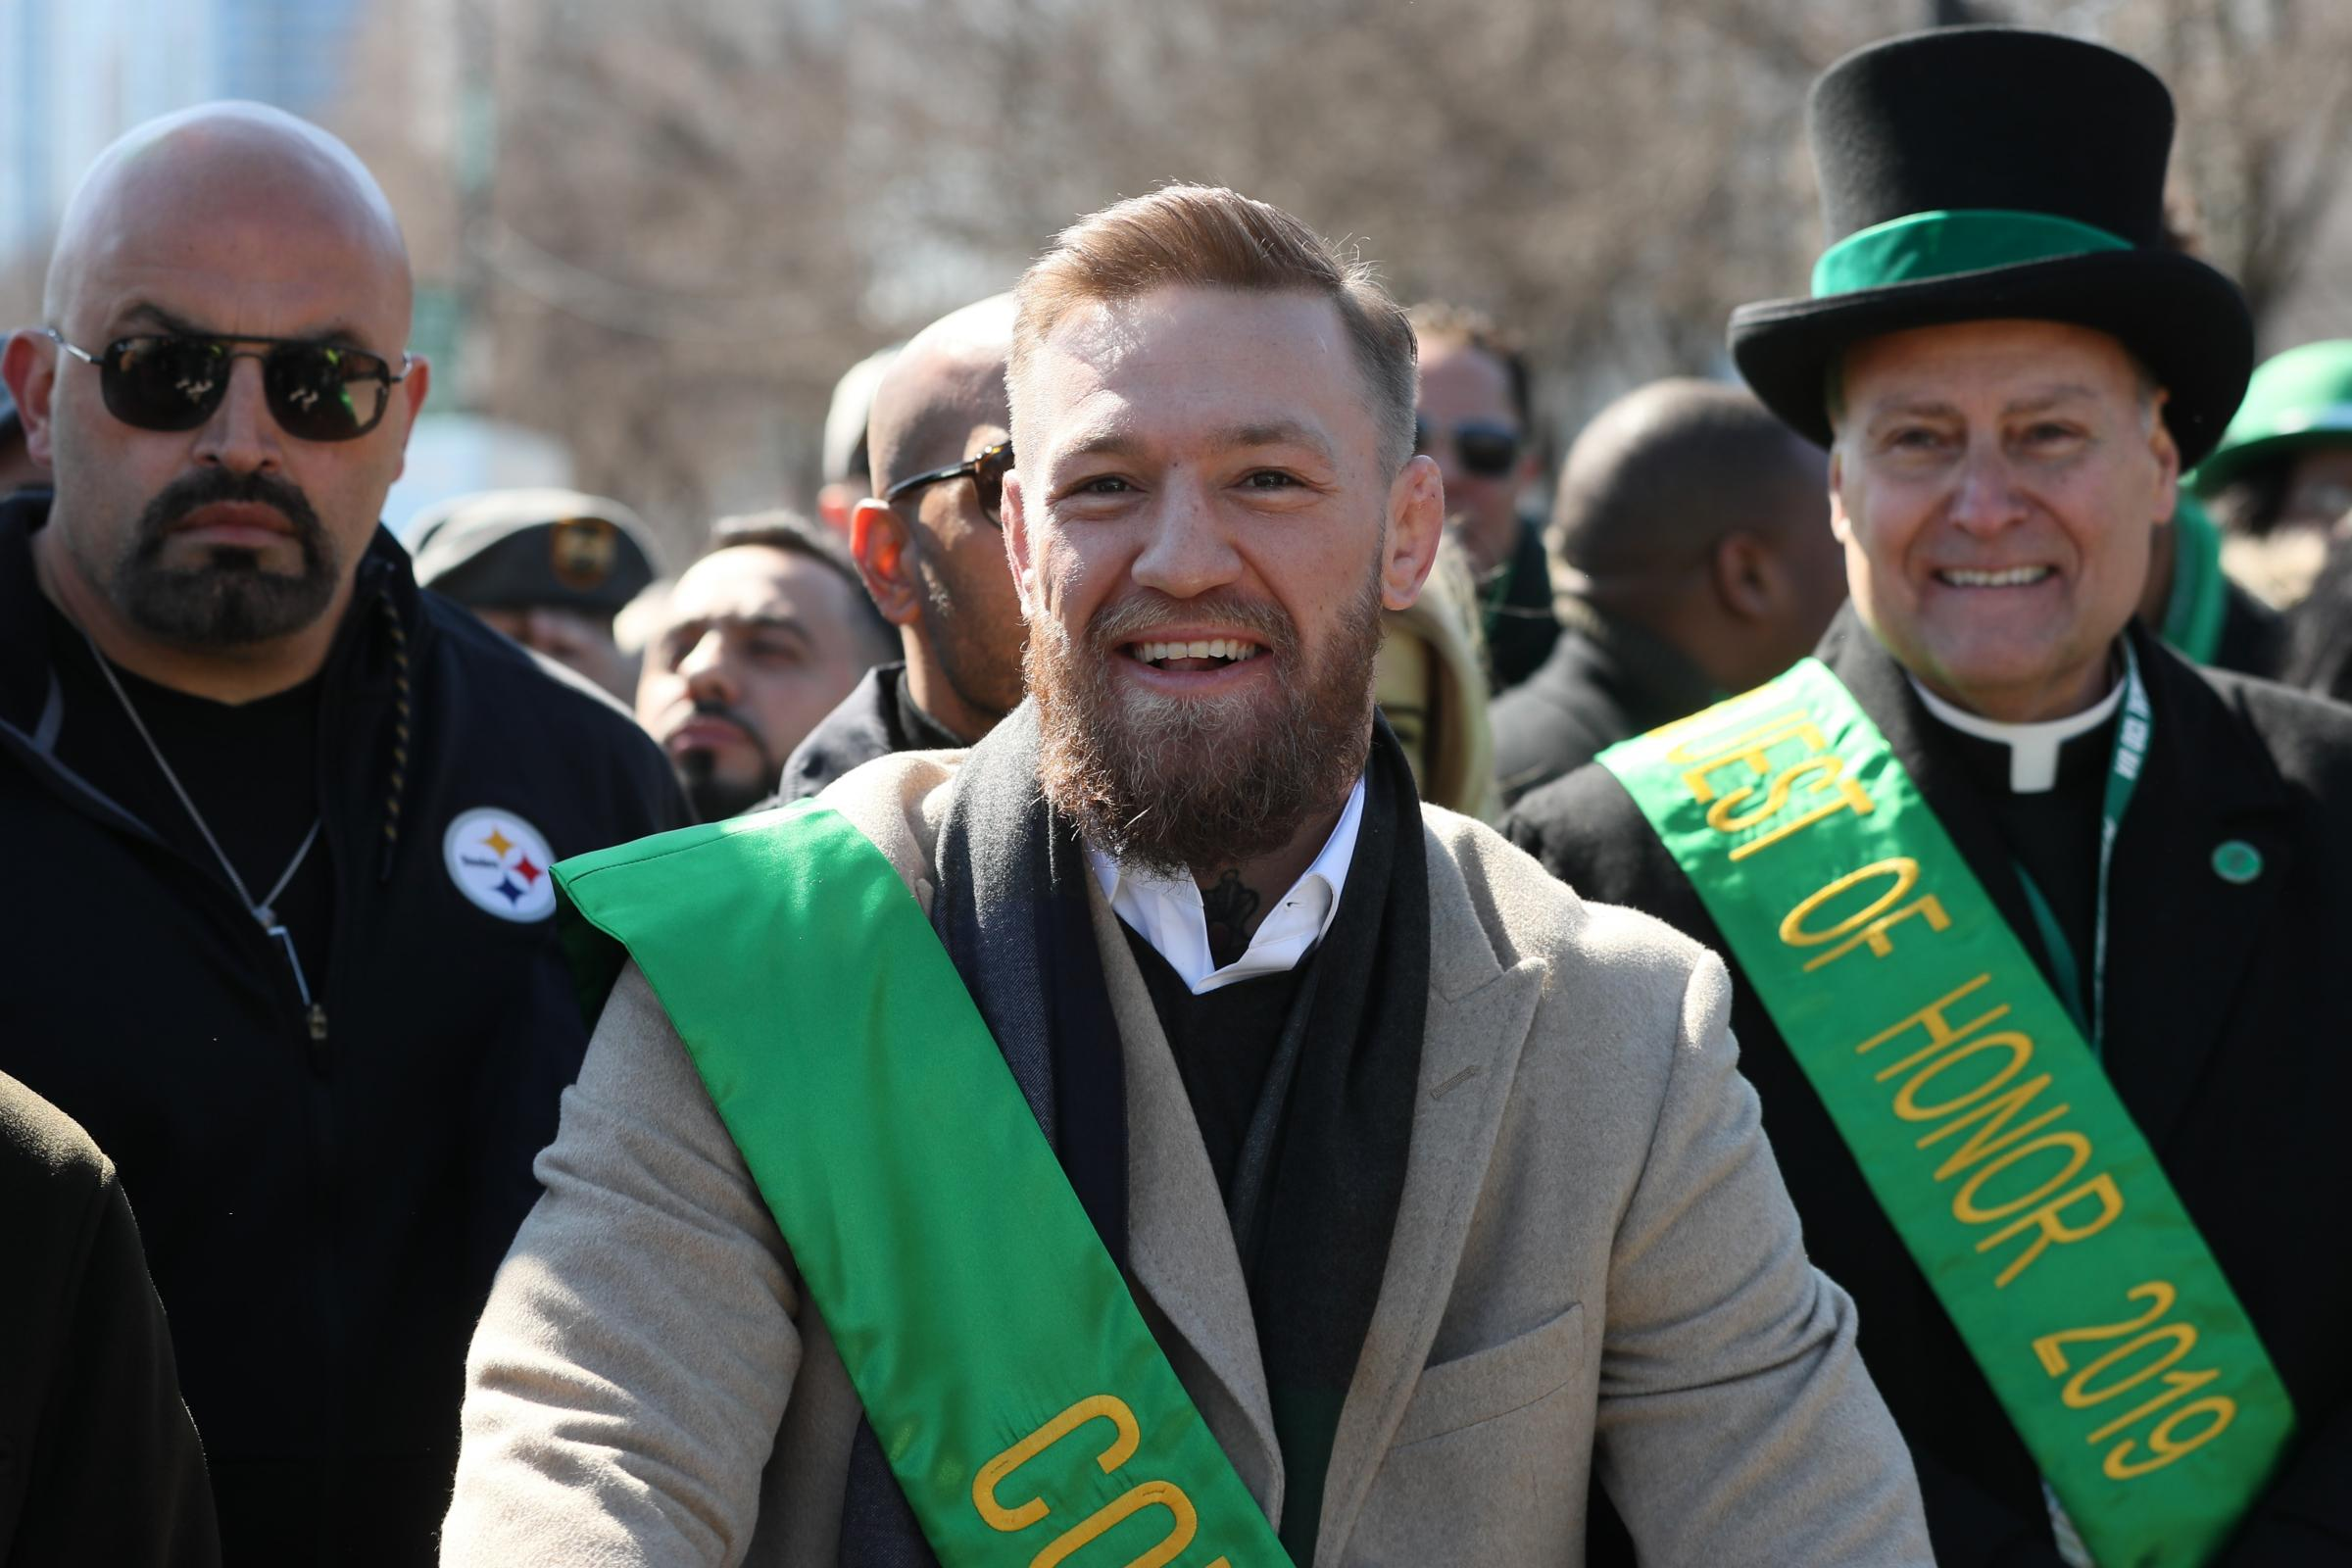 Conor McGregor joins the St Patrick's Day Parade in Chicago